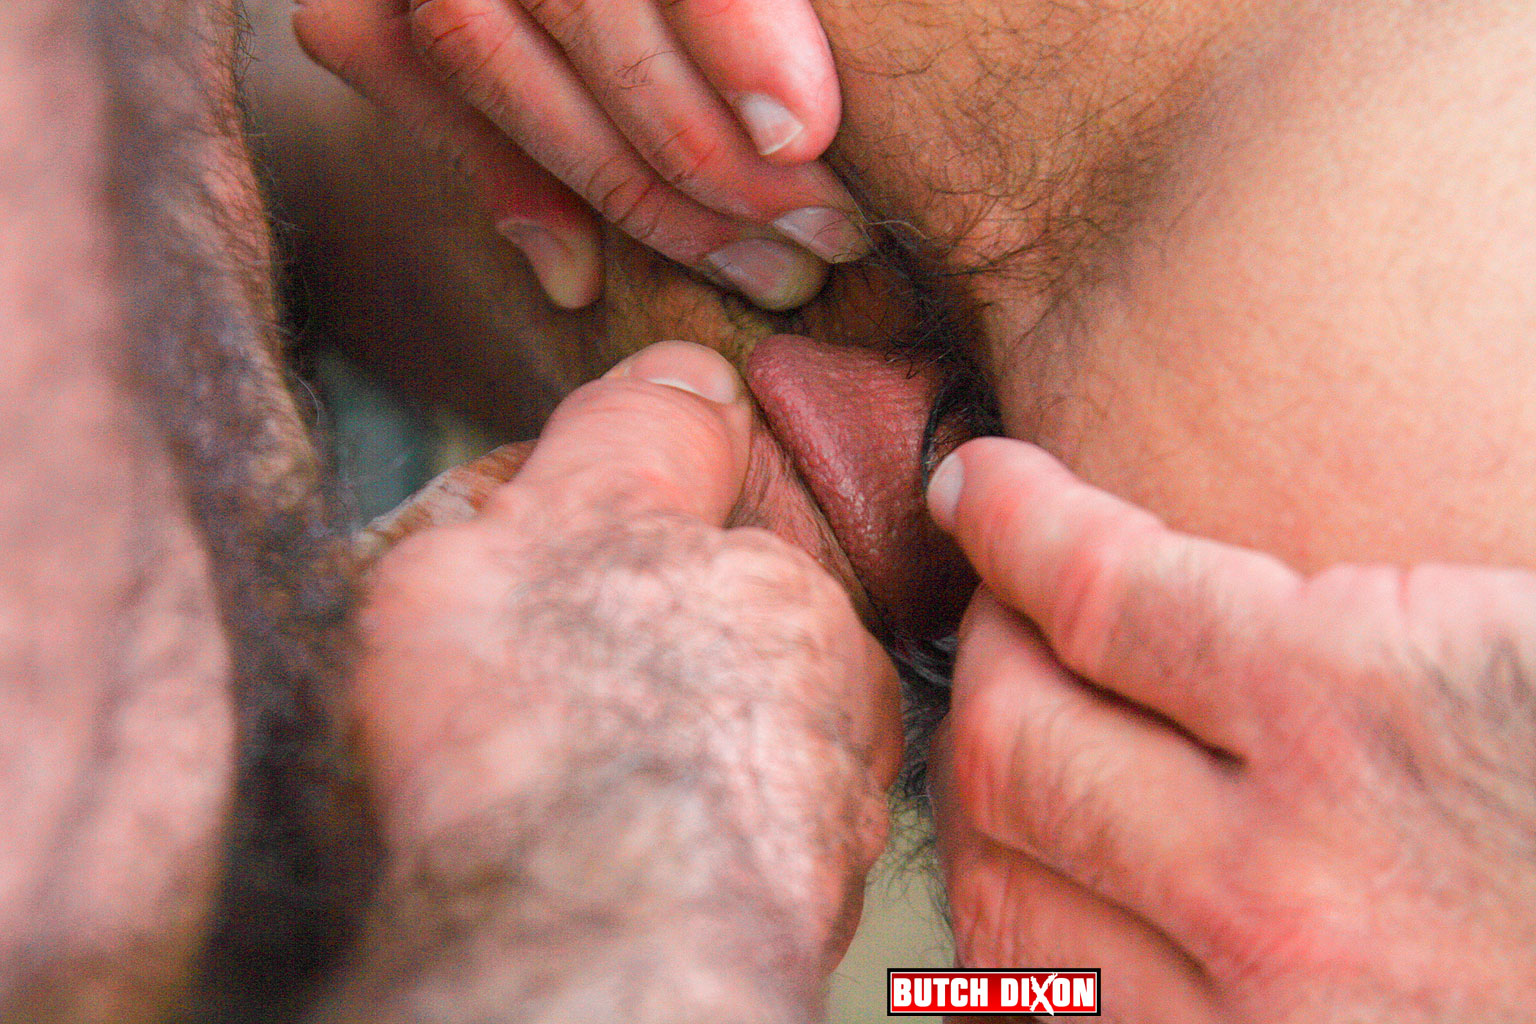 Butch Dixon Jeff Grove and Josh Ford Hairy Daddies Fucking with this Hairy Daddy Cock 11 Jeff Grove and Josh Ford:  Amateur Hairy Daddies Barebacking